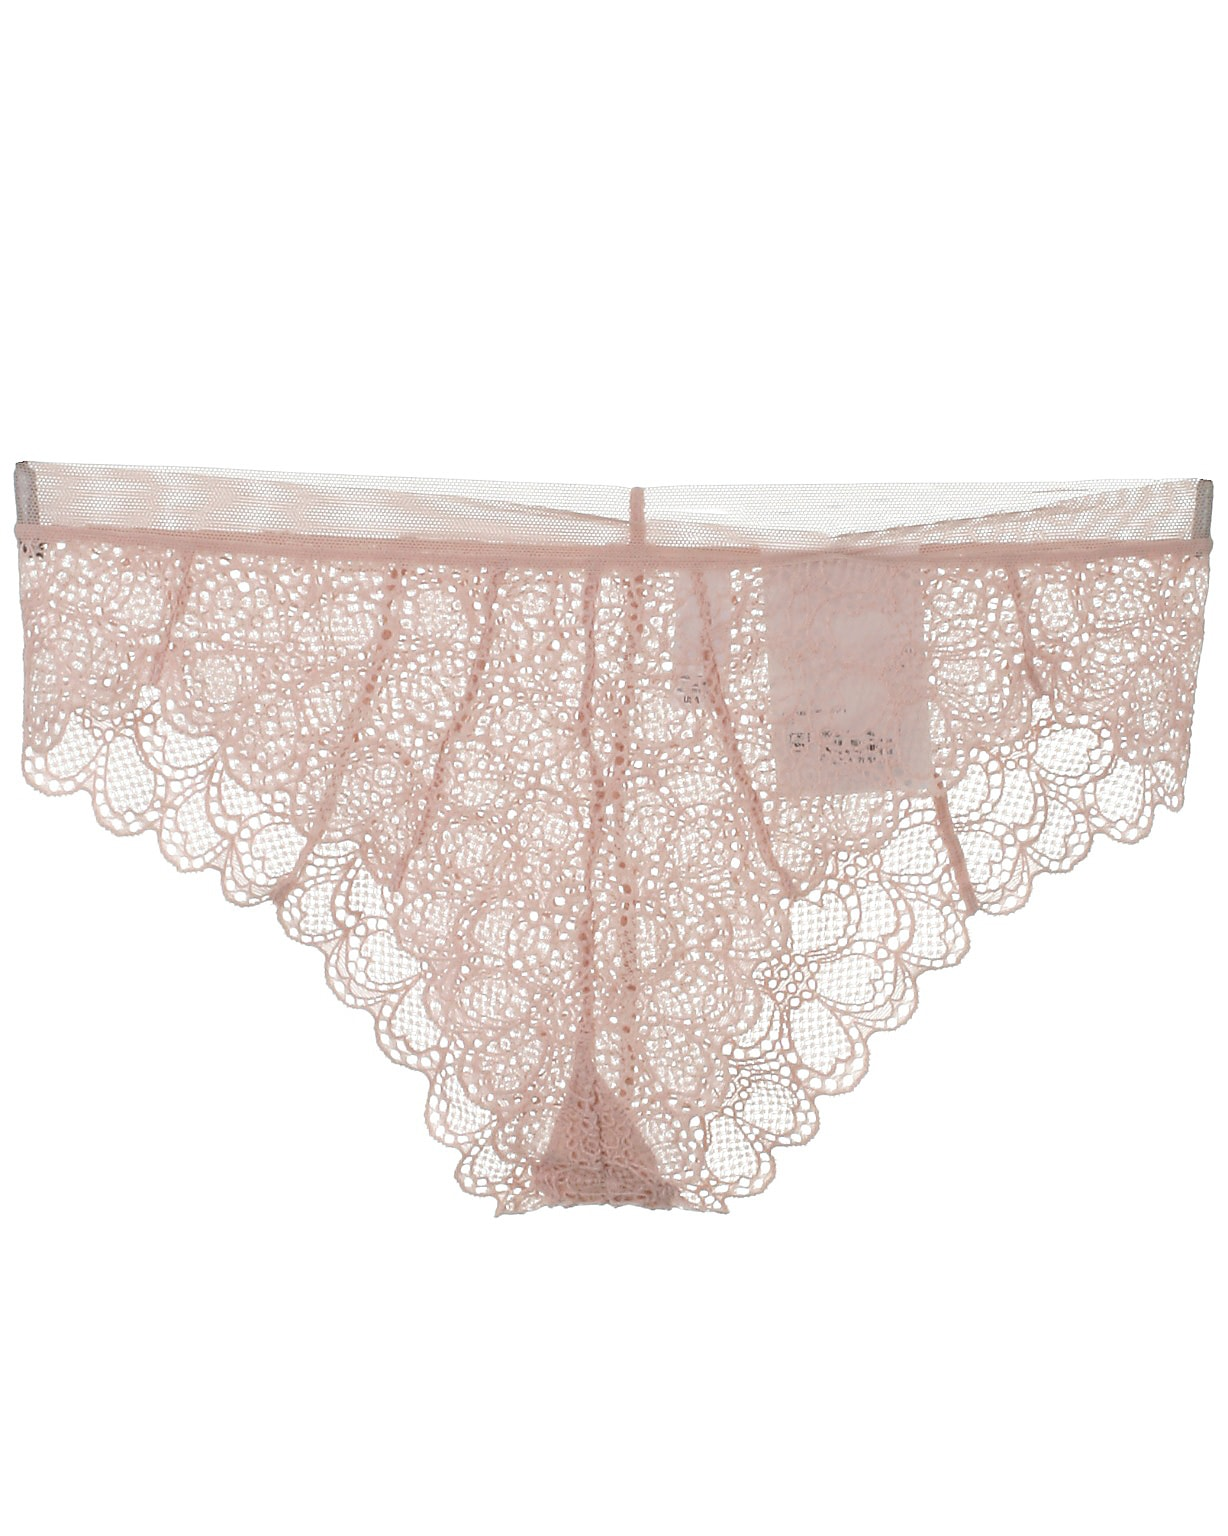 DKNY trusse, Brief, cameo